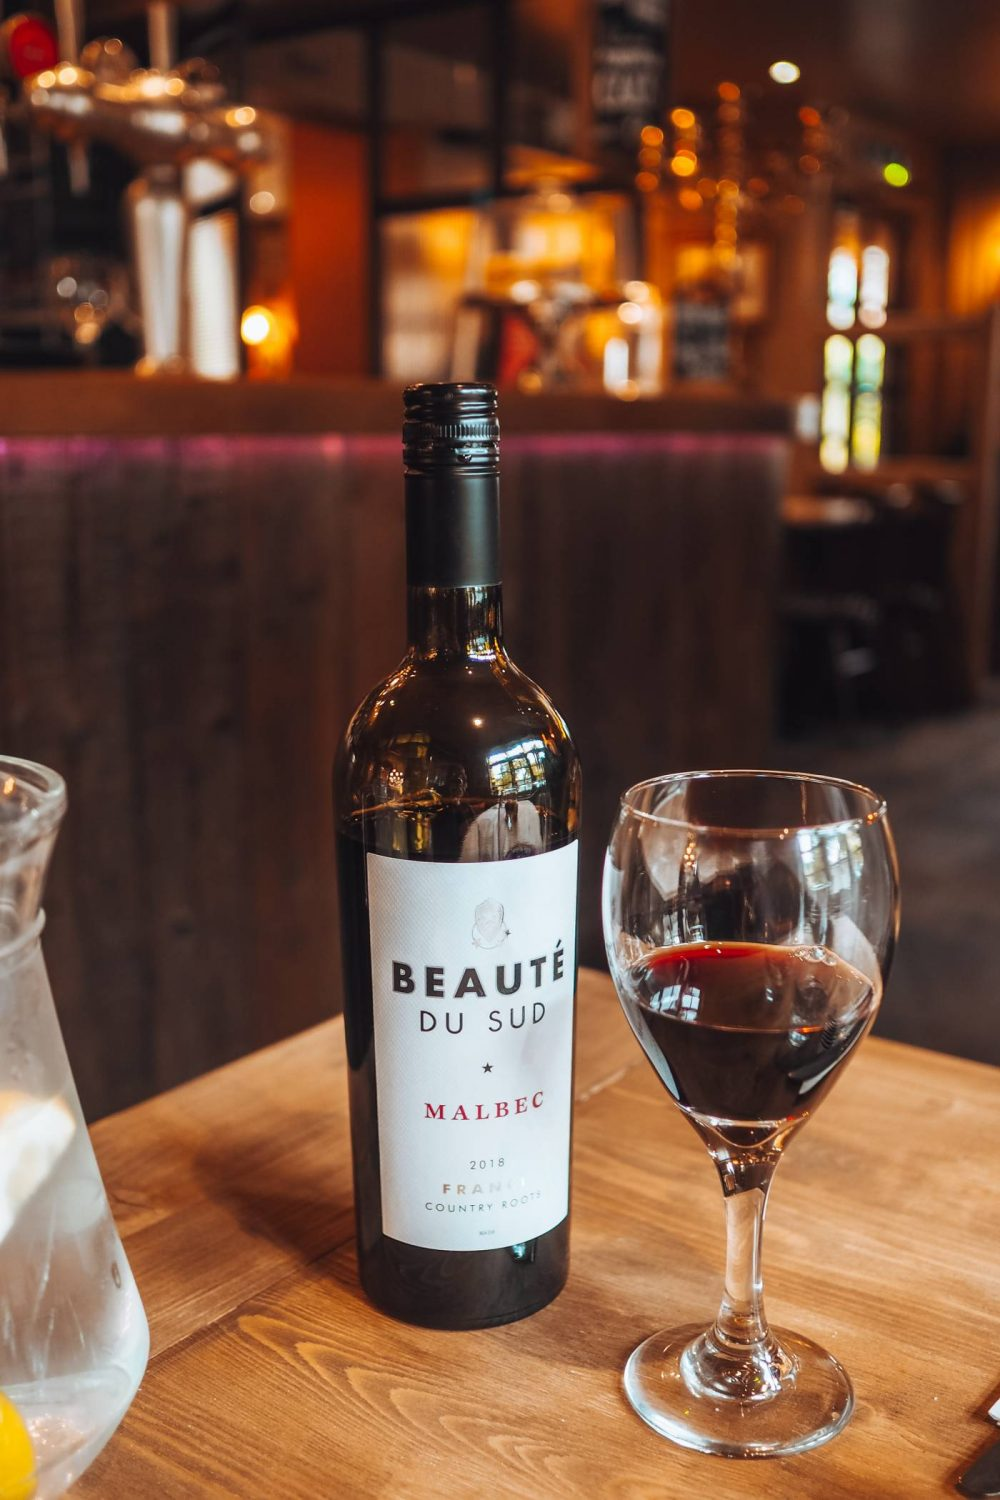 A bottle of red wine - Beauté Du Sud,  a Malbec from France